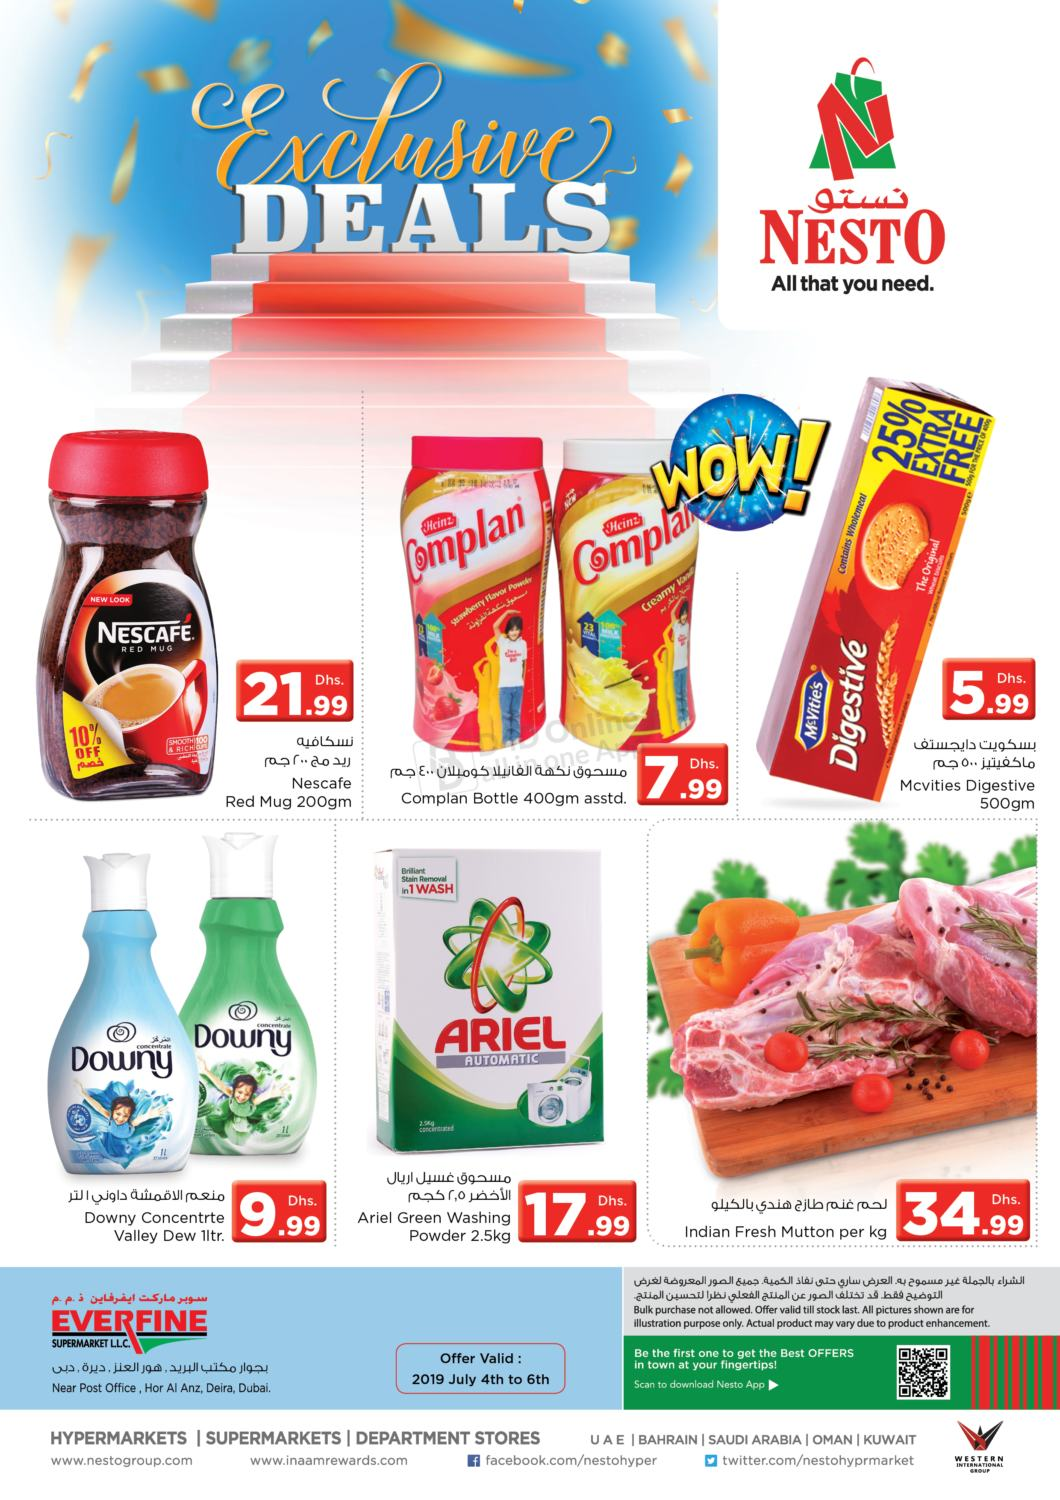 Nesto Hypermarket Offers in United Arab Emirates.